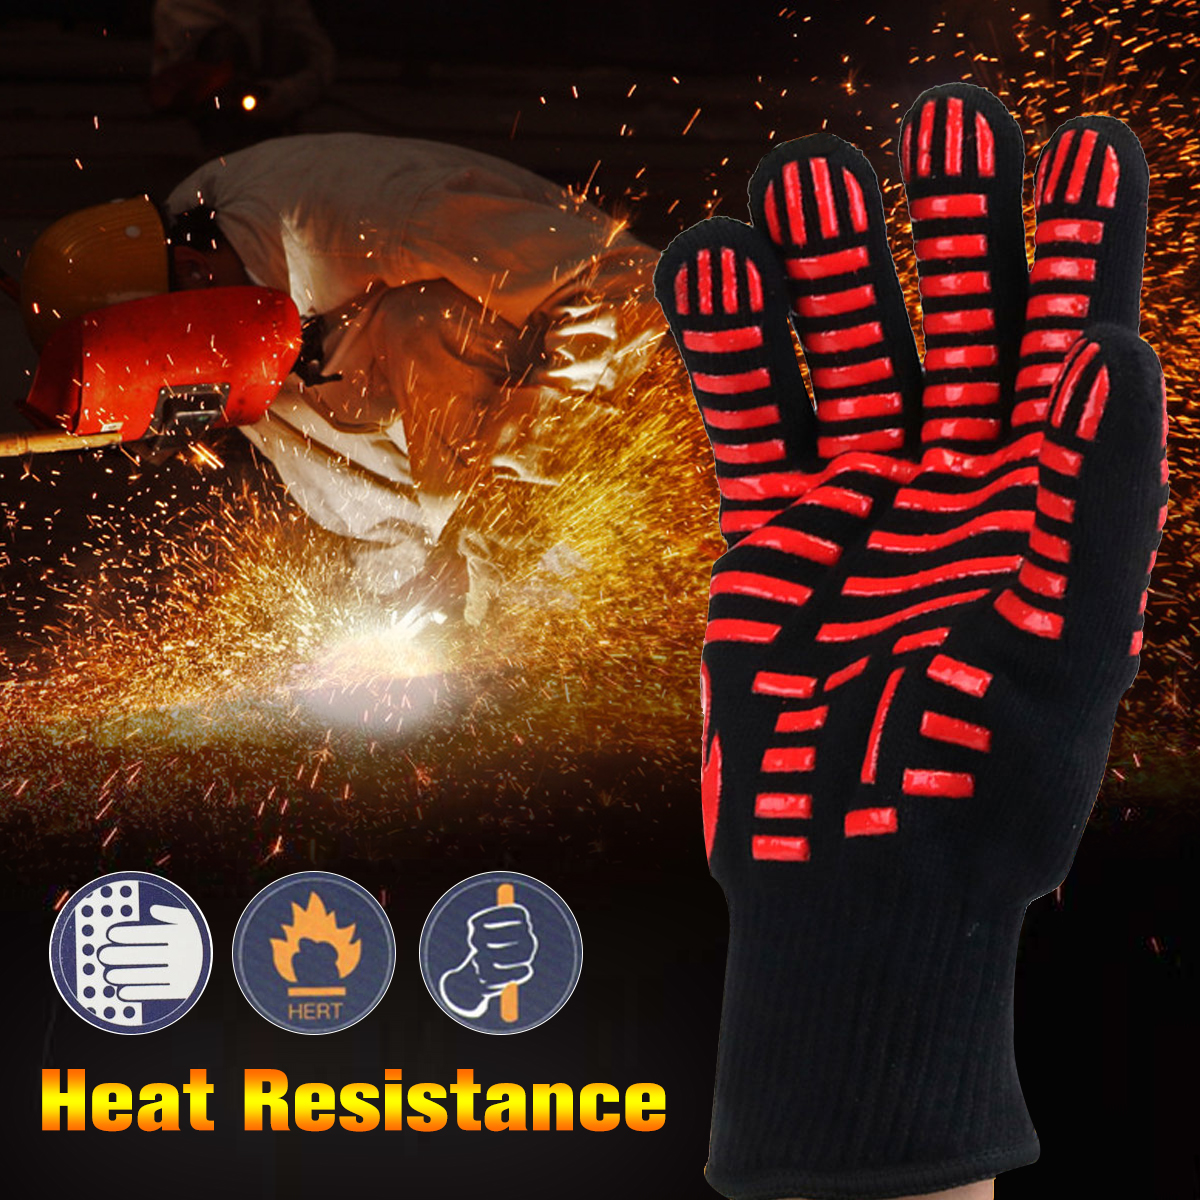 Fire Insulation Safety Gloves Heat Resistant Glove Aramid BBQ Glove Oven Kitchen Glove Direct Supply Forearm Protection 932f high temp heat resistant welding gloves bbq oven firebreak aramid fiber work glove